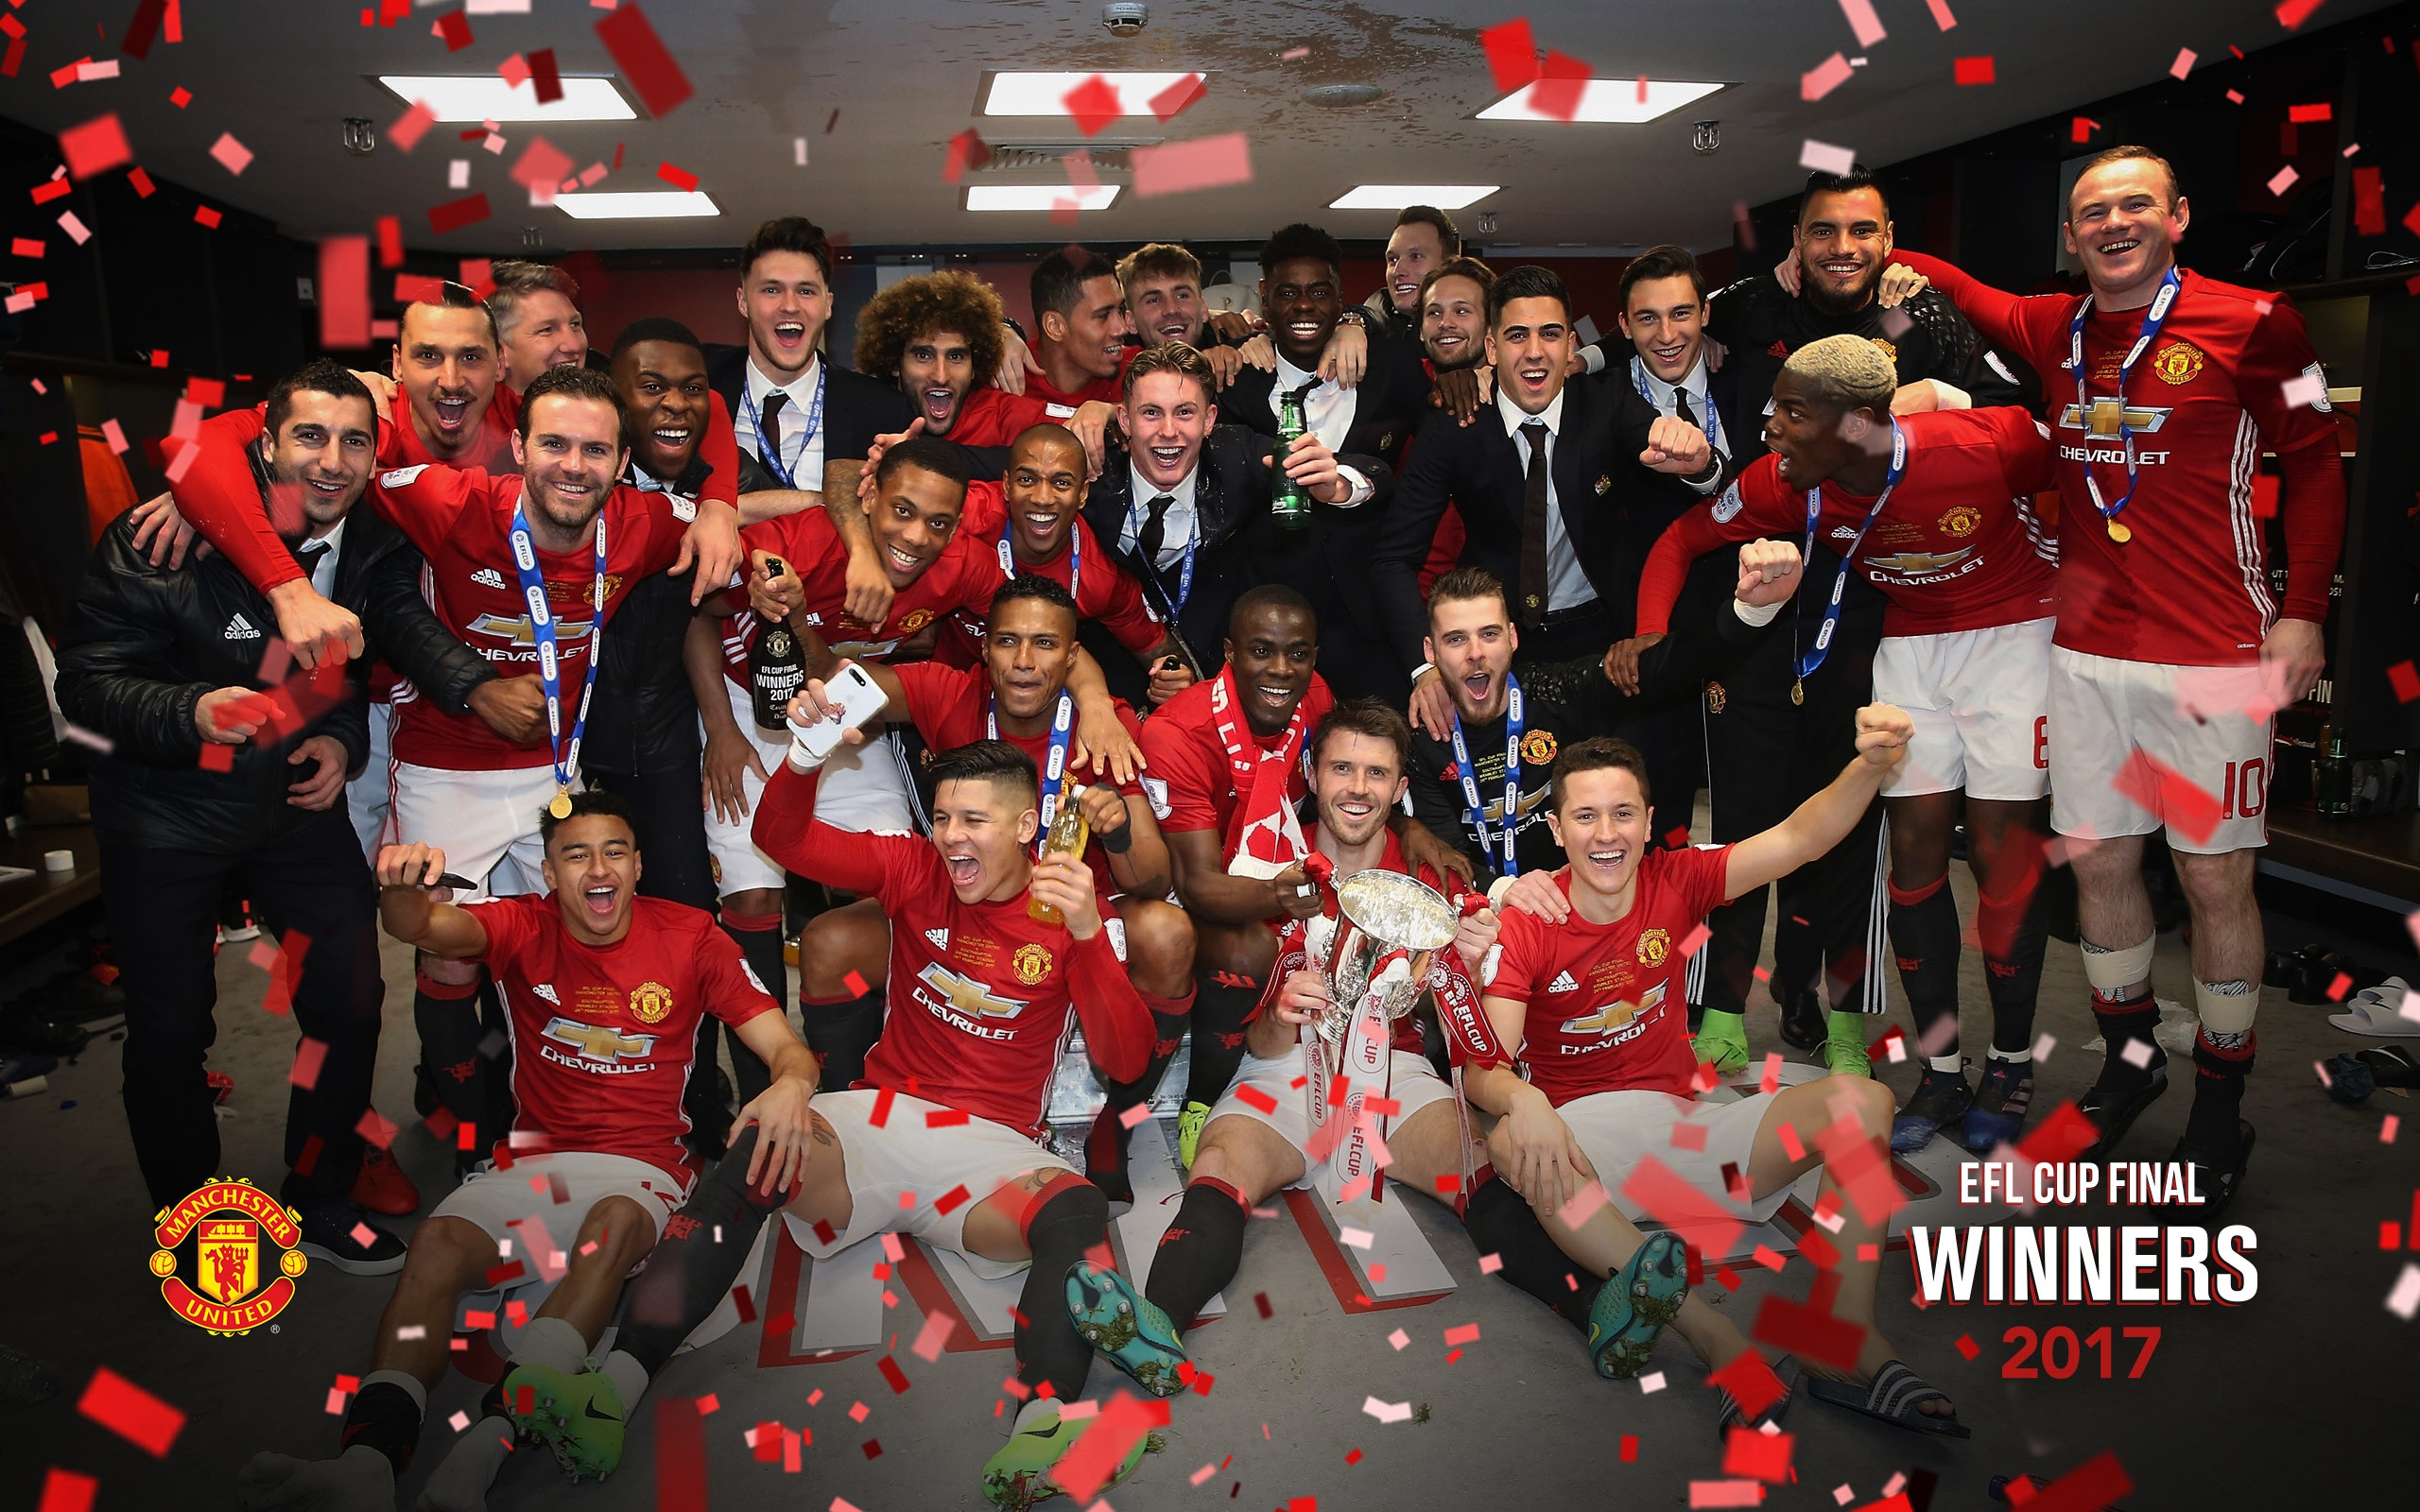 Elegant Wallpaper Of Manchester United 2017 Great Foofball Club 2560x1600